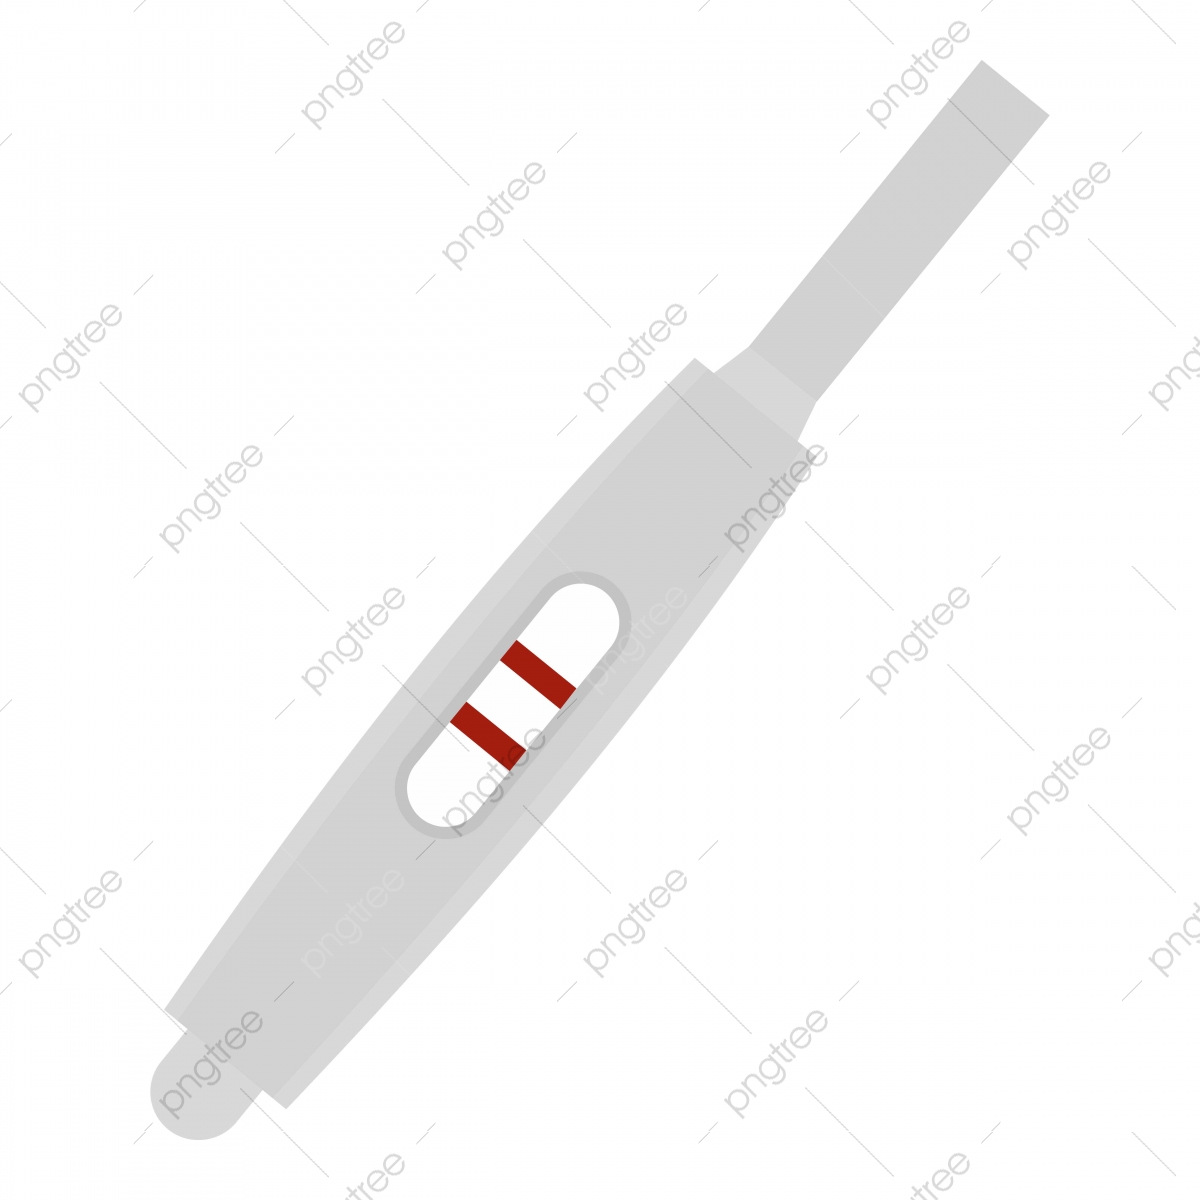 Pregnancy Test Png Images Vector And Psd Files Free Download